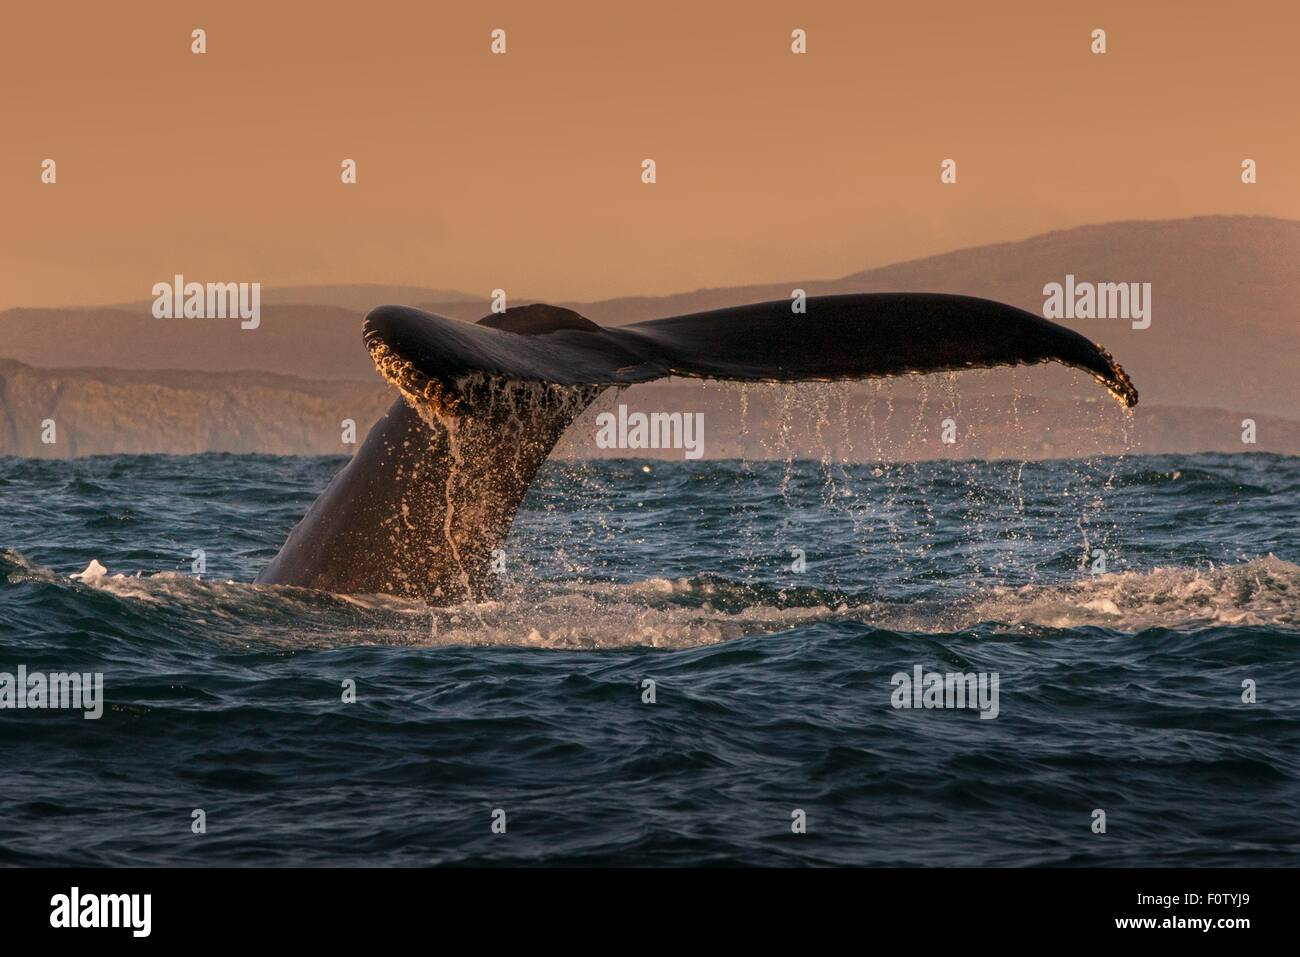 Tail of humpback whale, South West Cork, Ireland - Stock Image